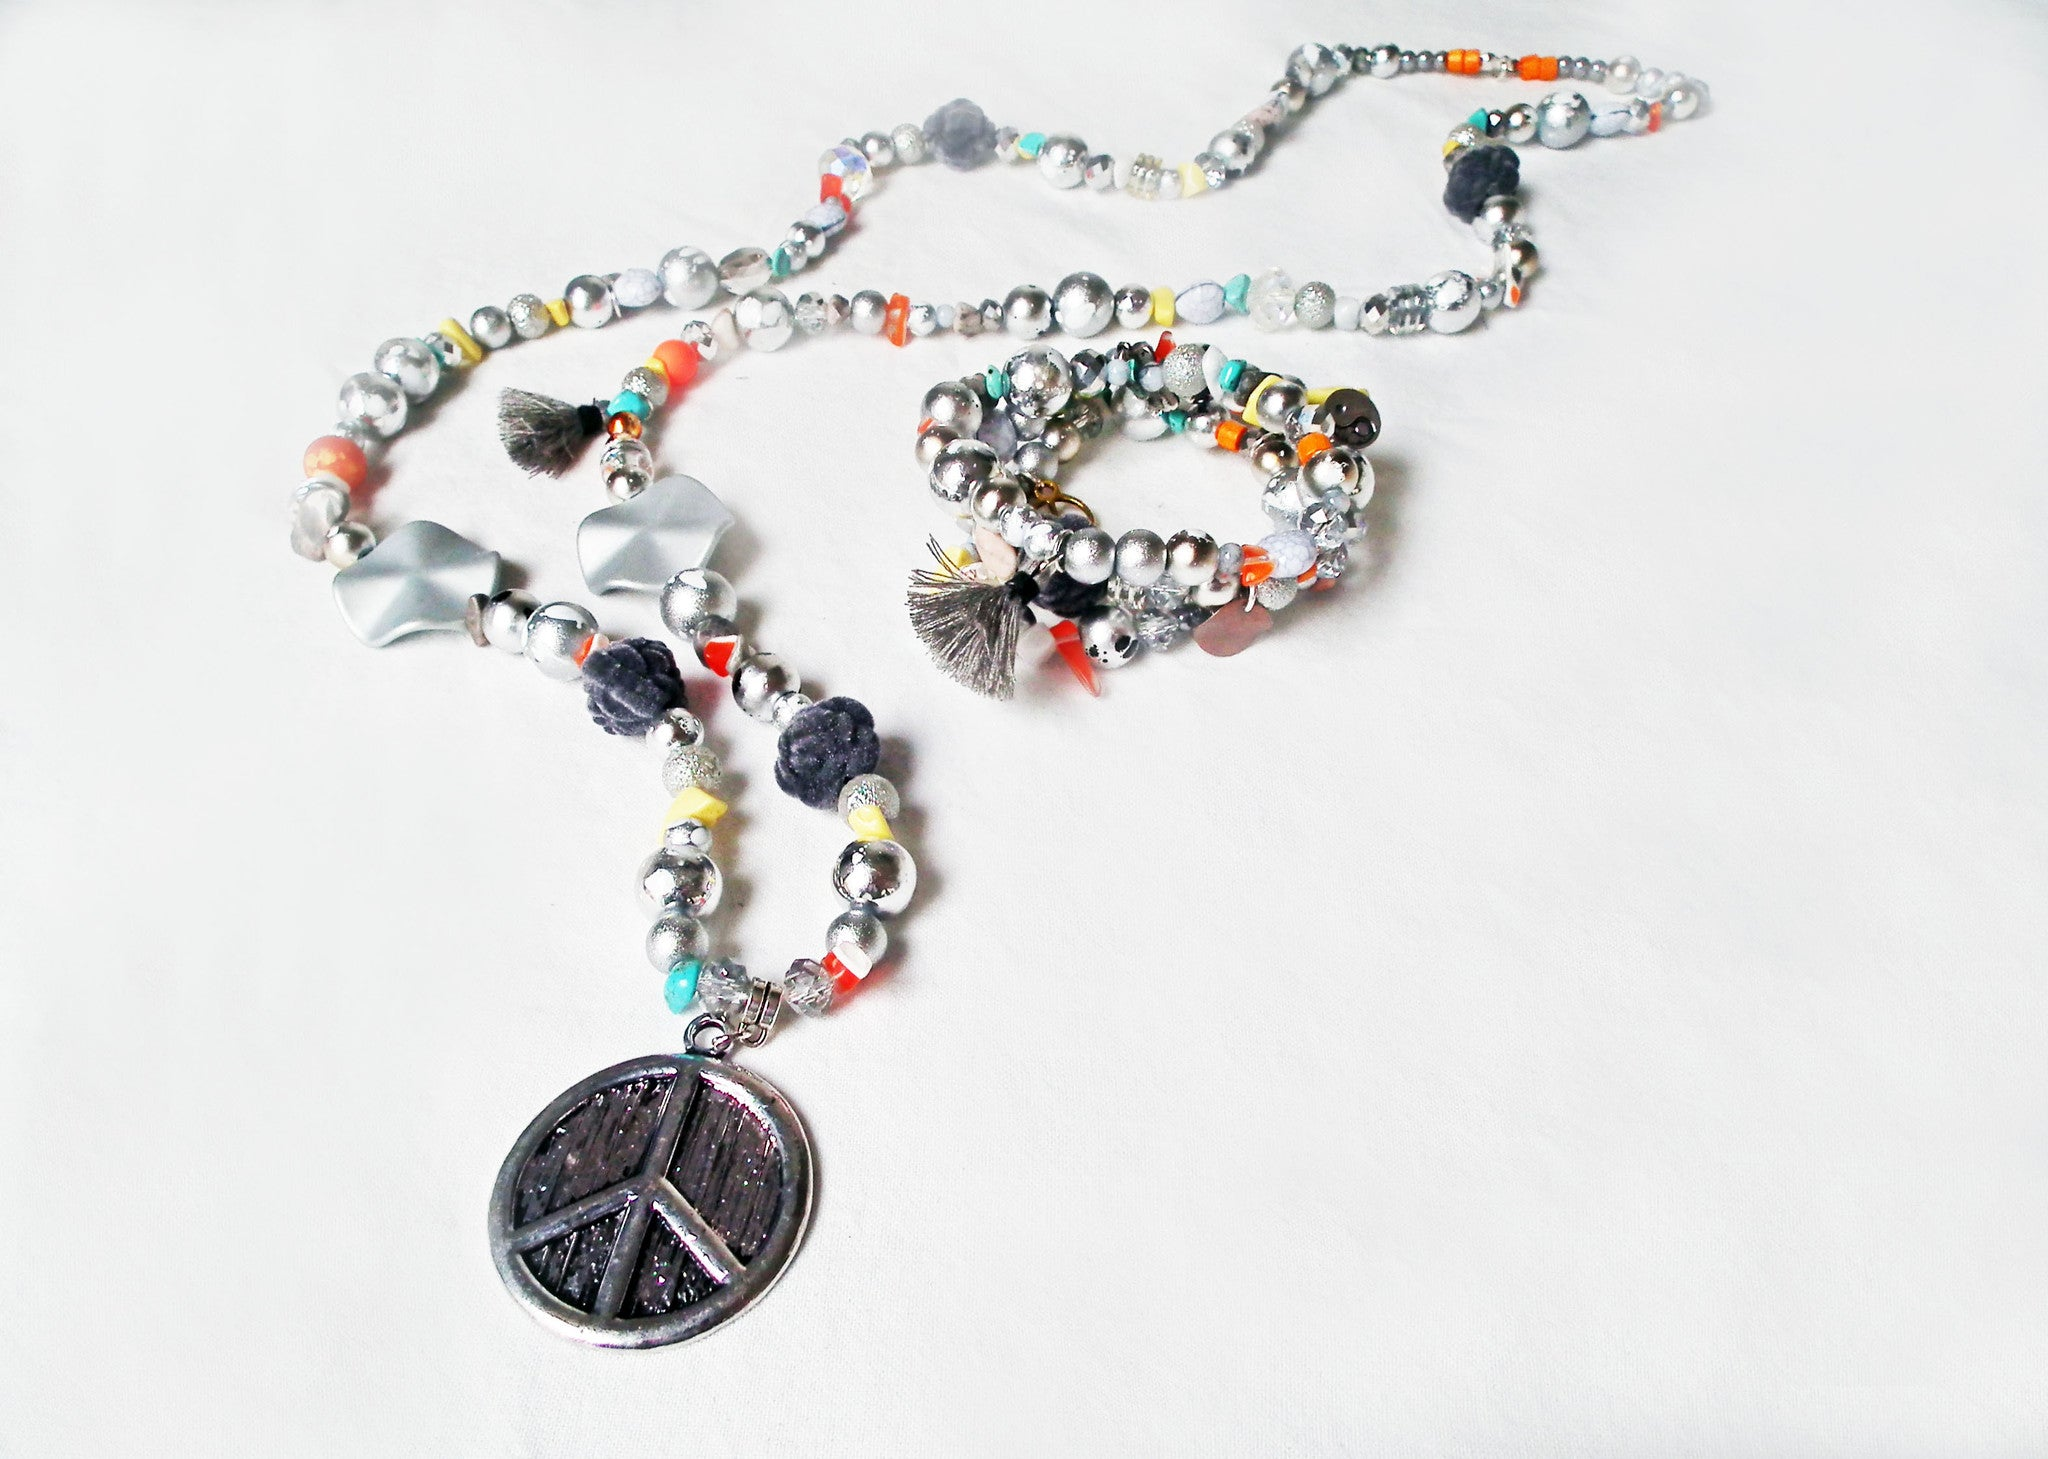 Sautoirs et Bracelets Uniques / Handmade Exclusive Necklaces and Bracelets - No Mercy Making